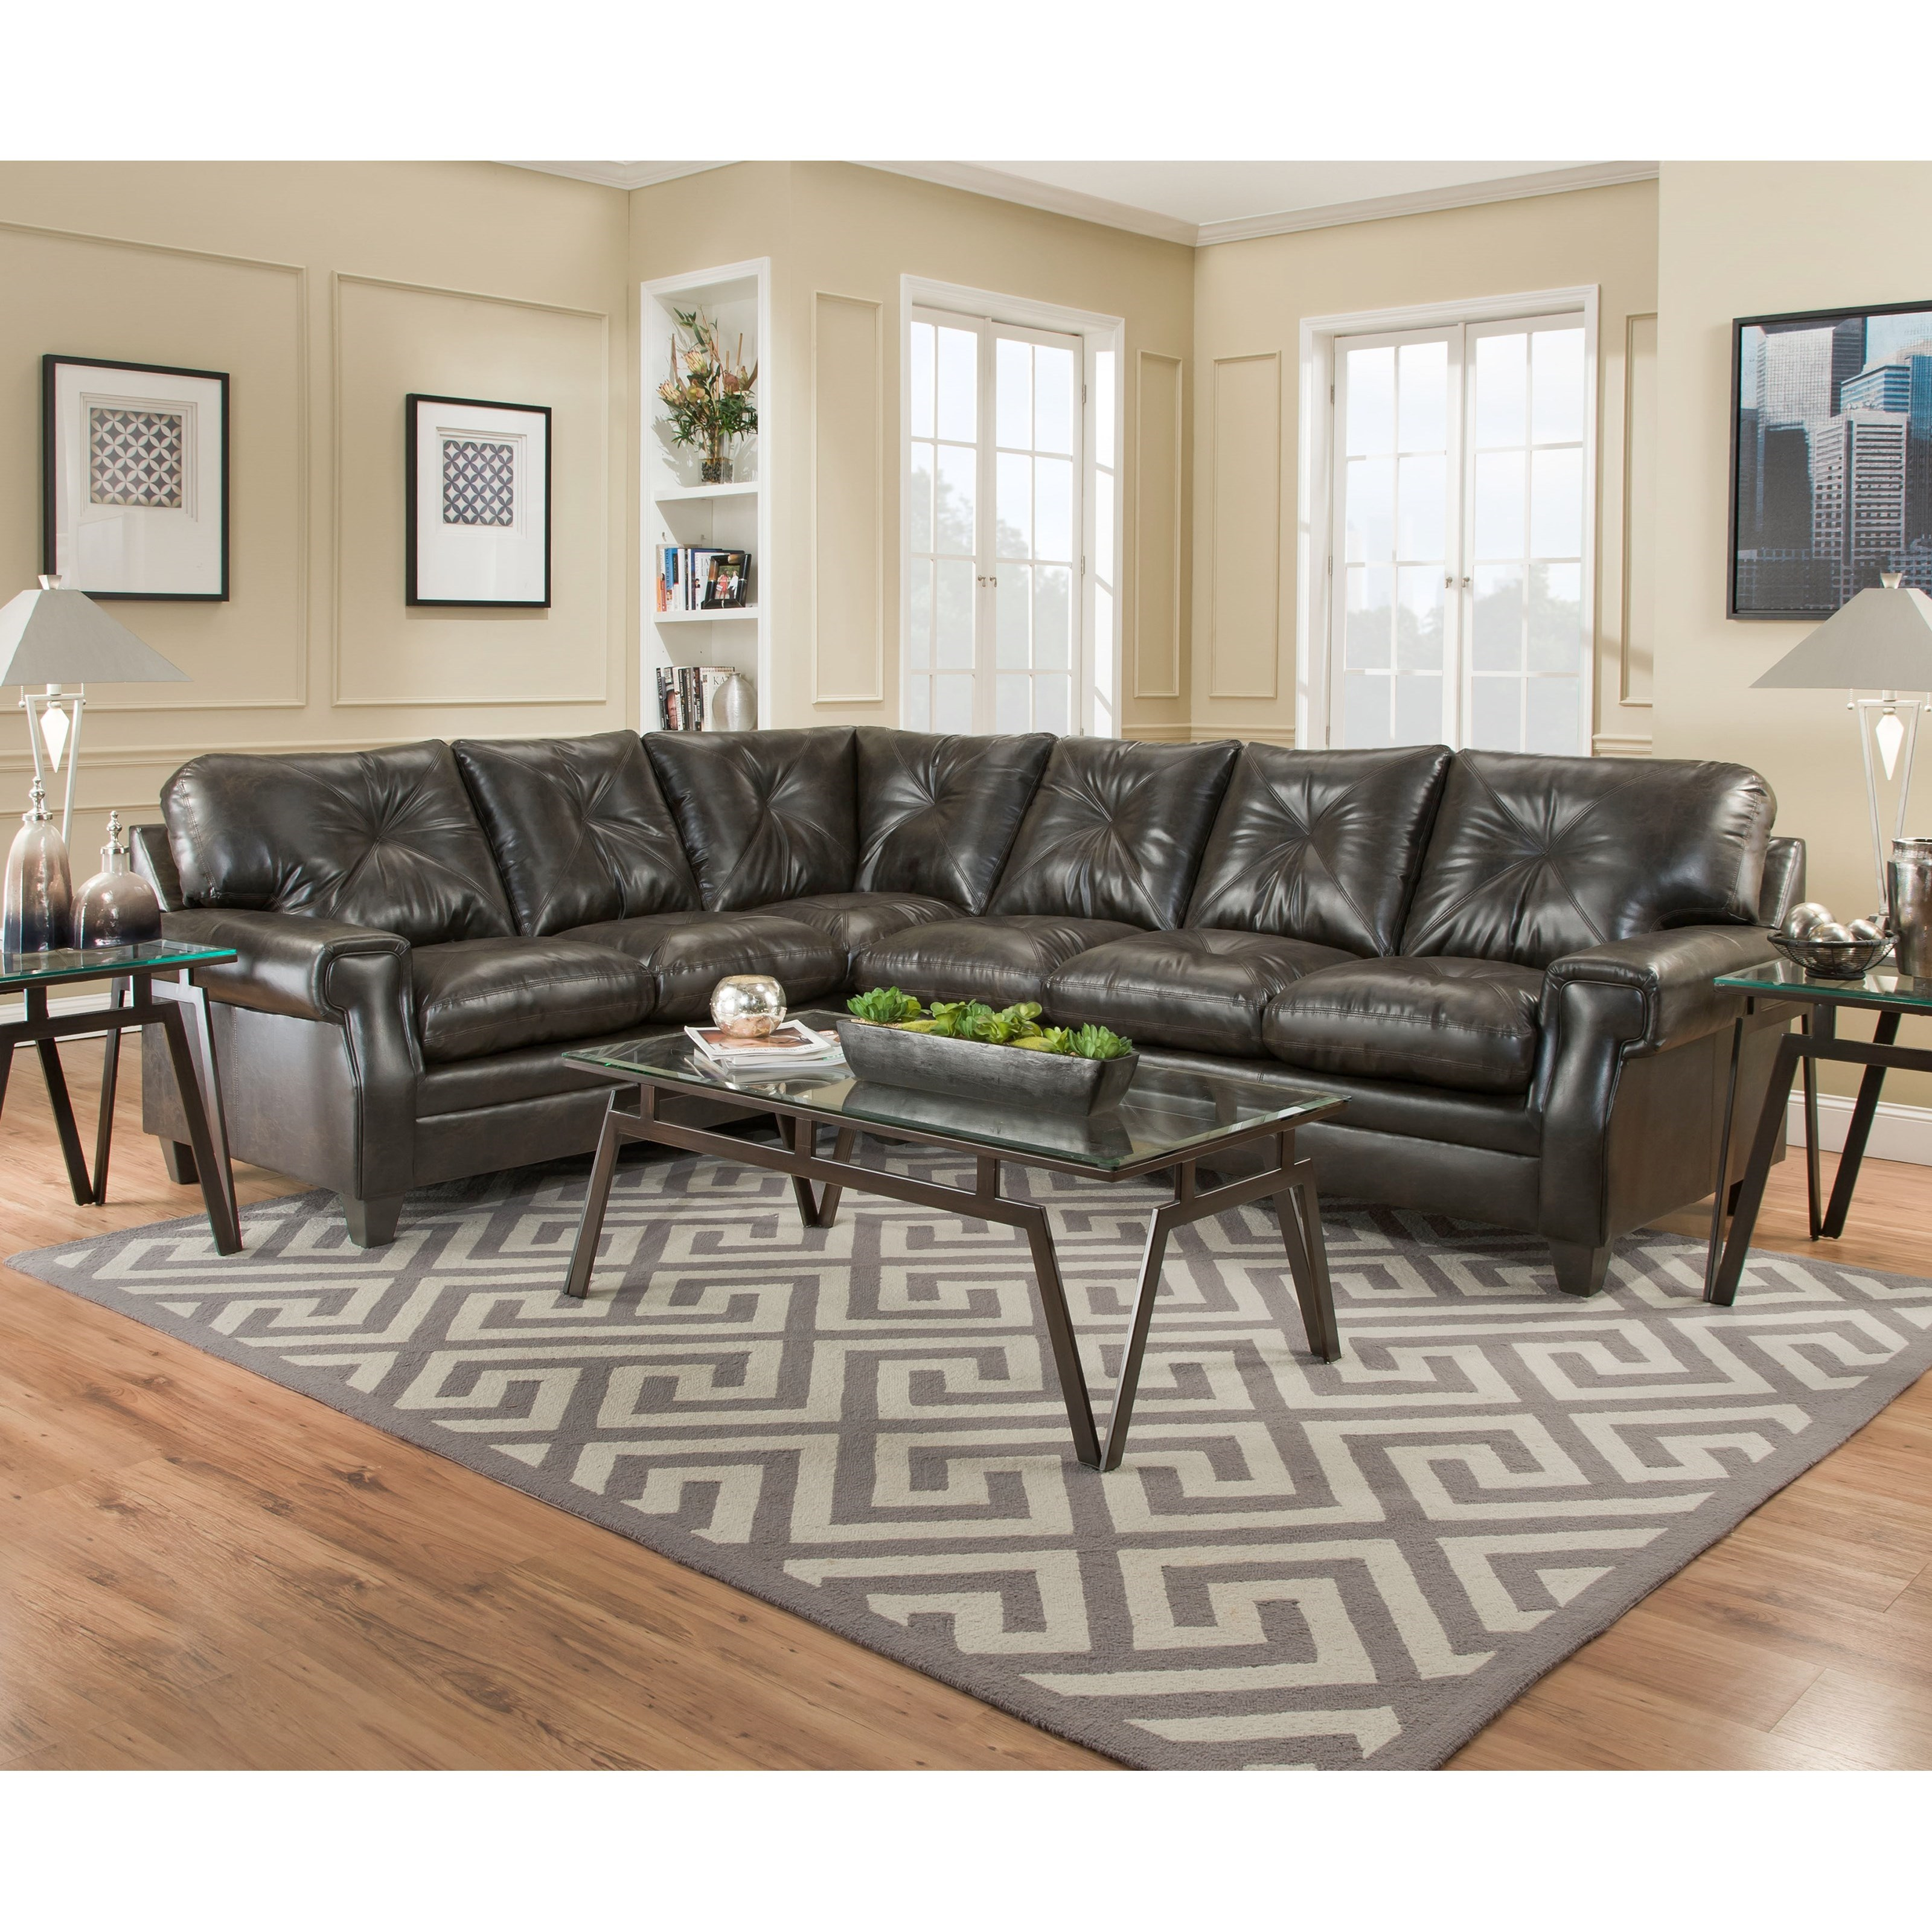 Simmons Upholstery 8065 5 Seat Sectional - Item Number: 8065RAFSofa+LAFBumpSofa-LuckyMarble